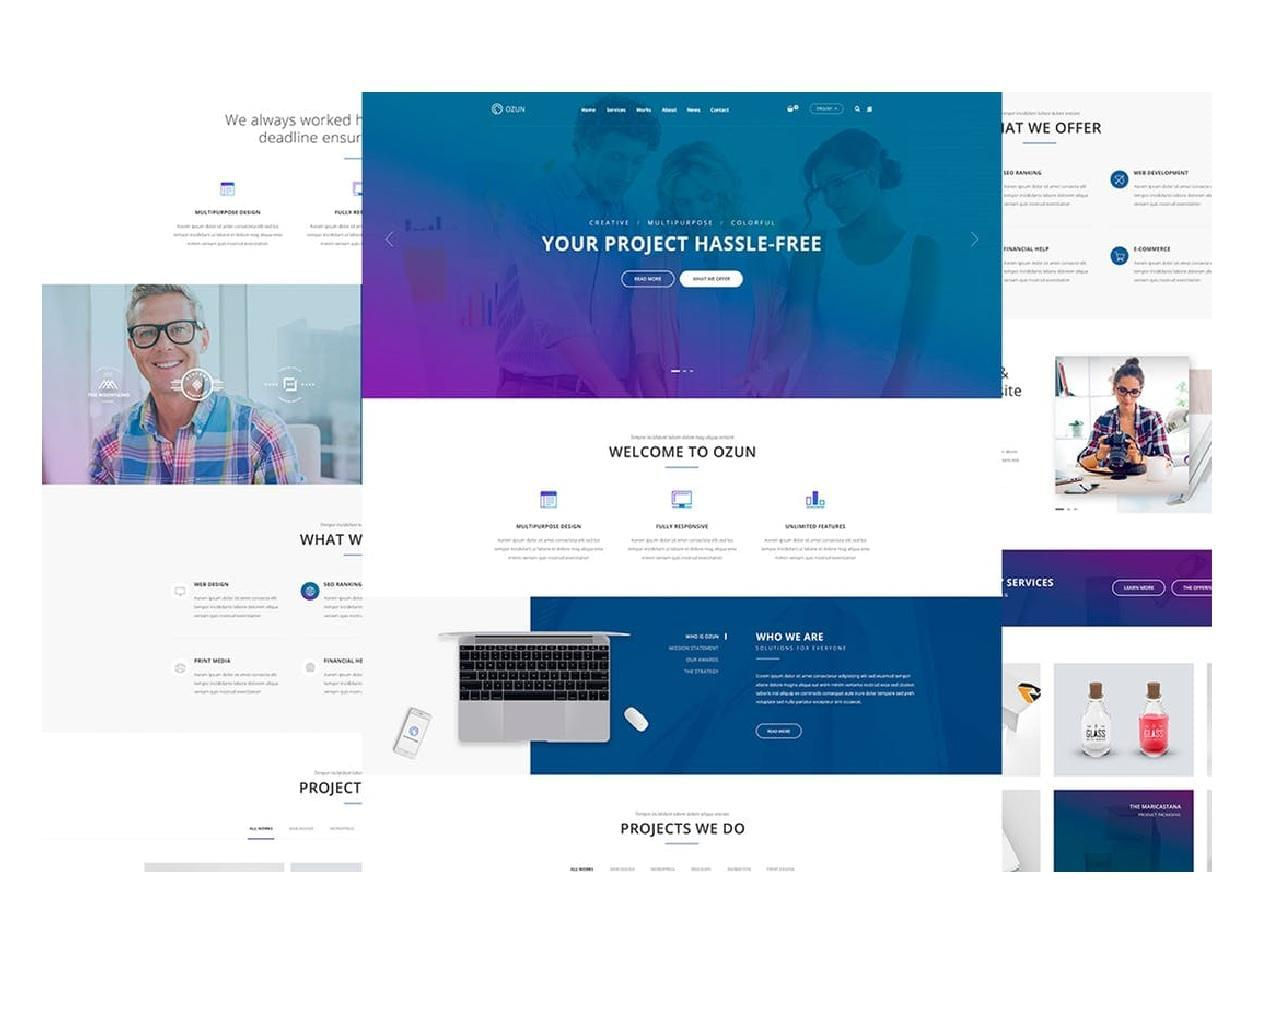 Express PSD to HTML5/CSS3 by pluginpunch - 114141